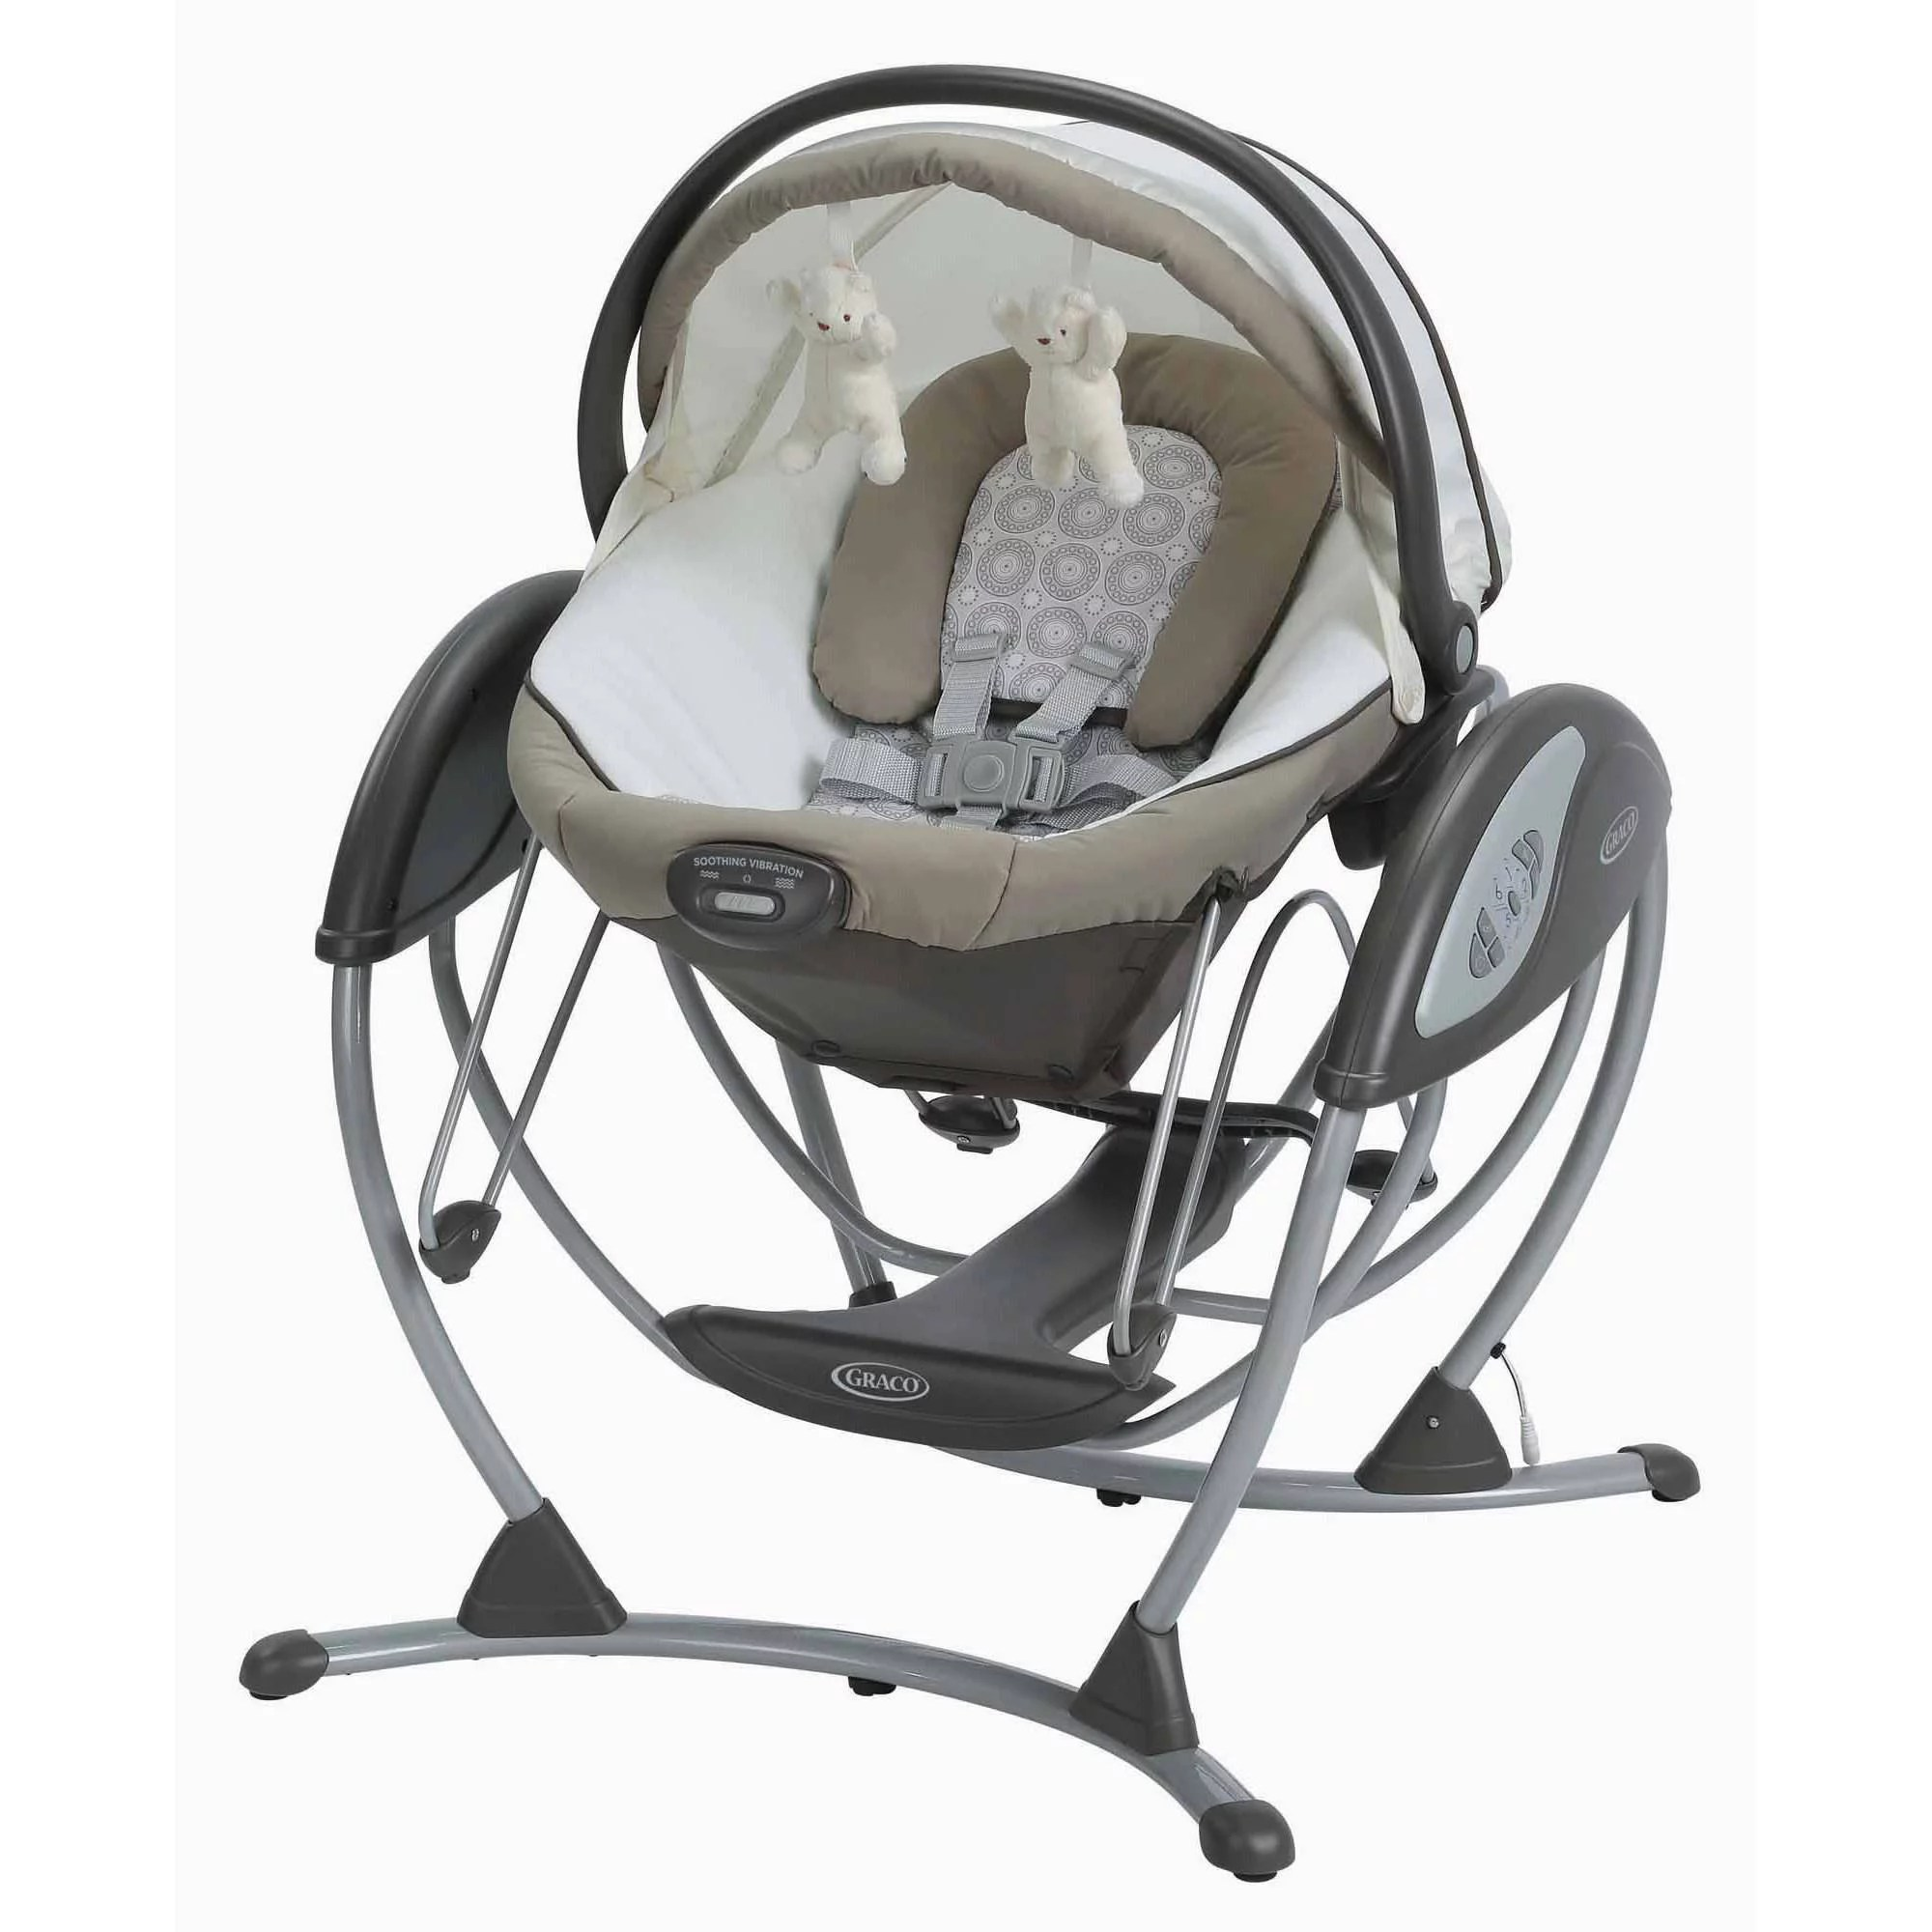 baby swing vibrating chair combo wooden church chairs uk graco soothing system glider abbington walmart com